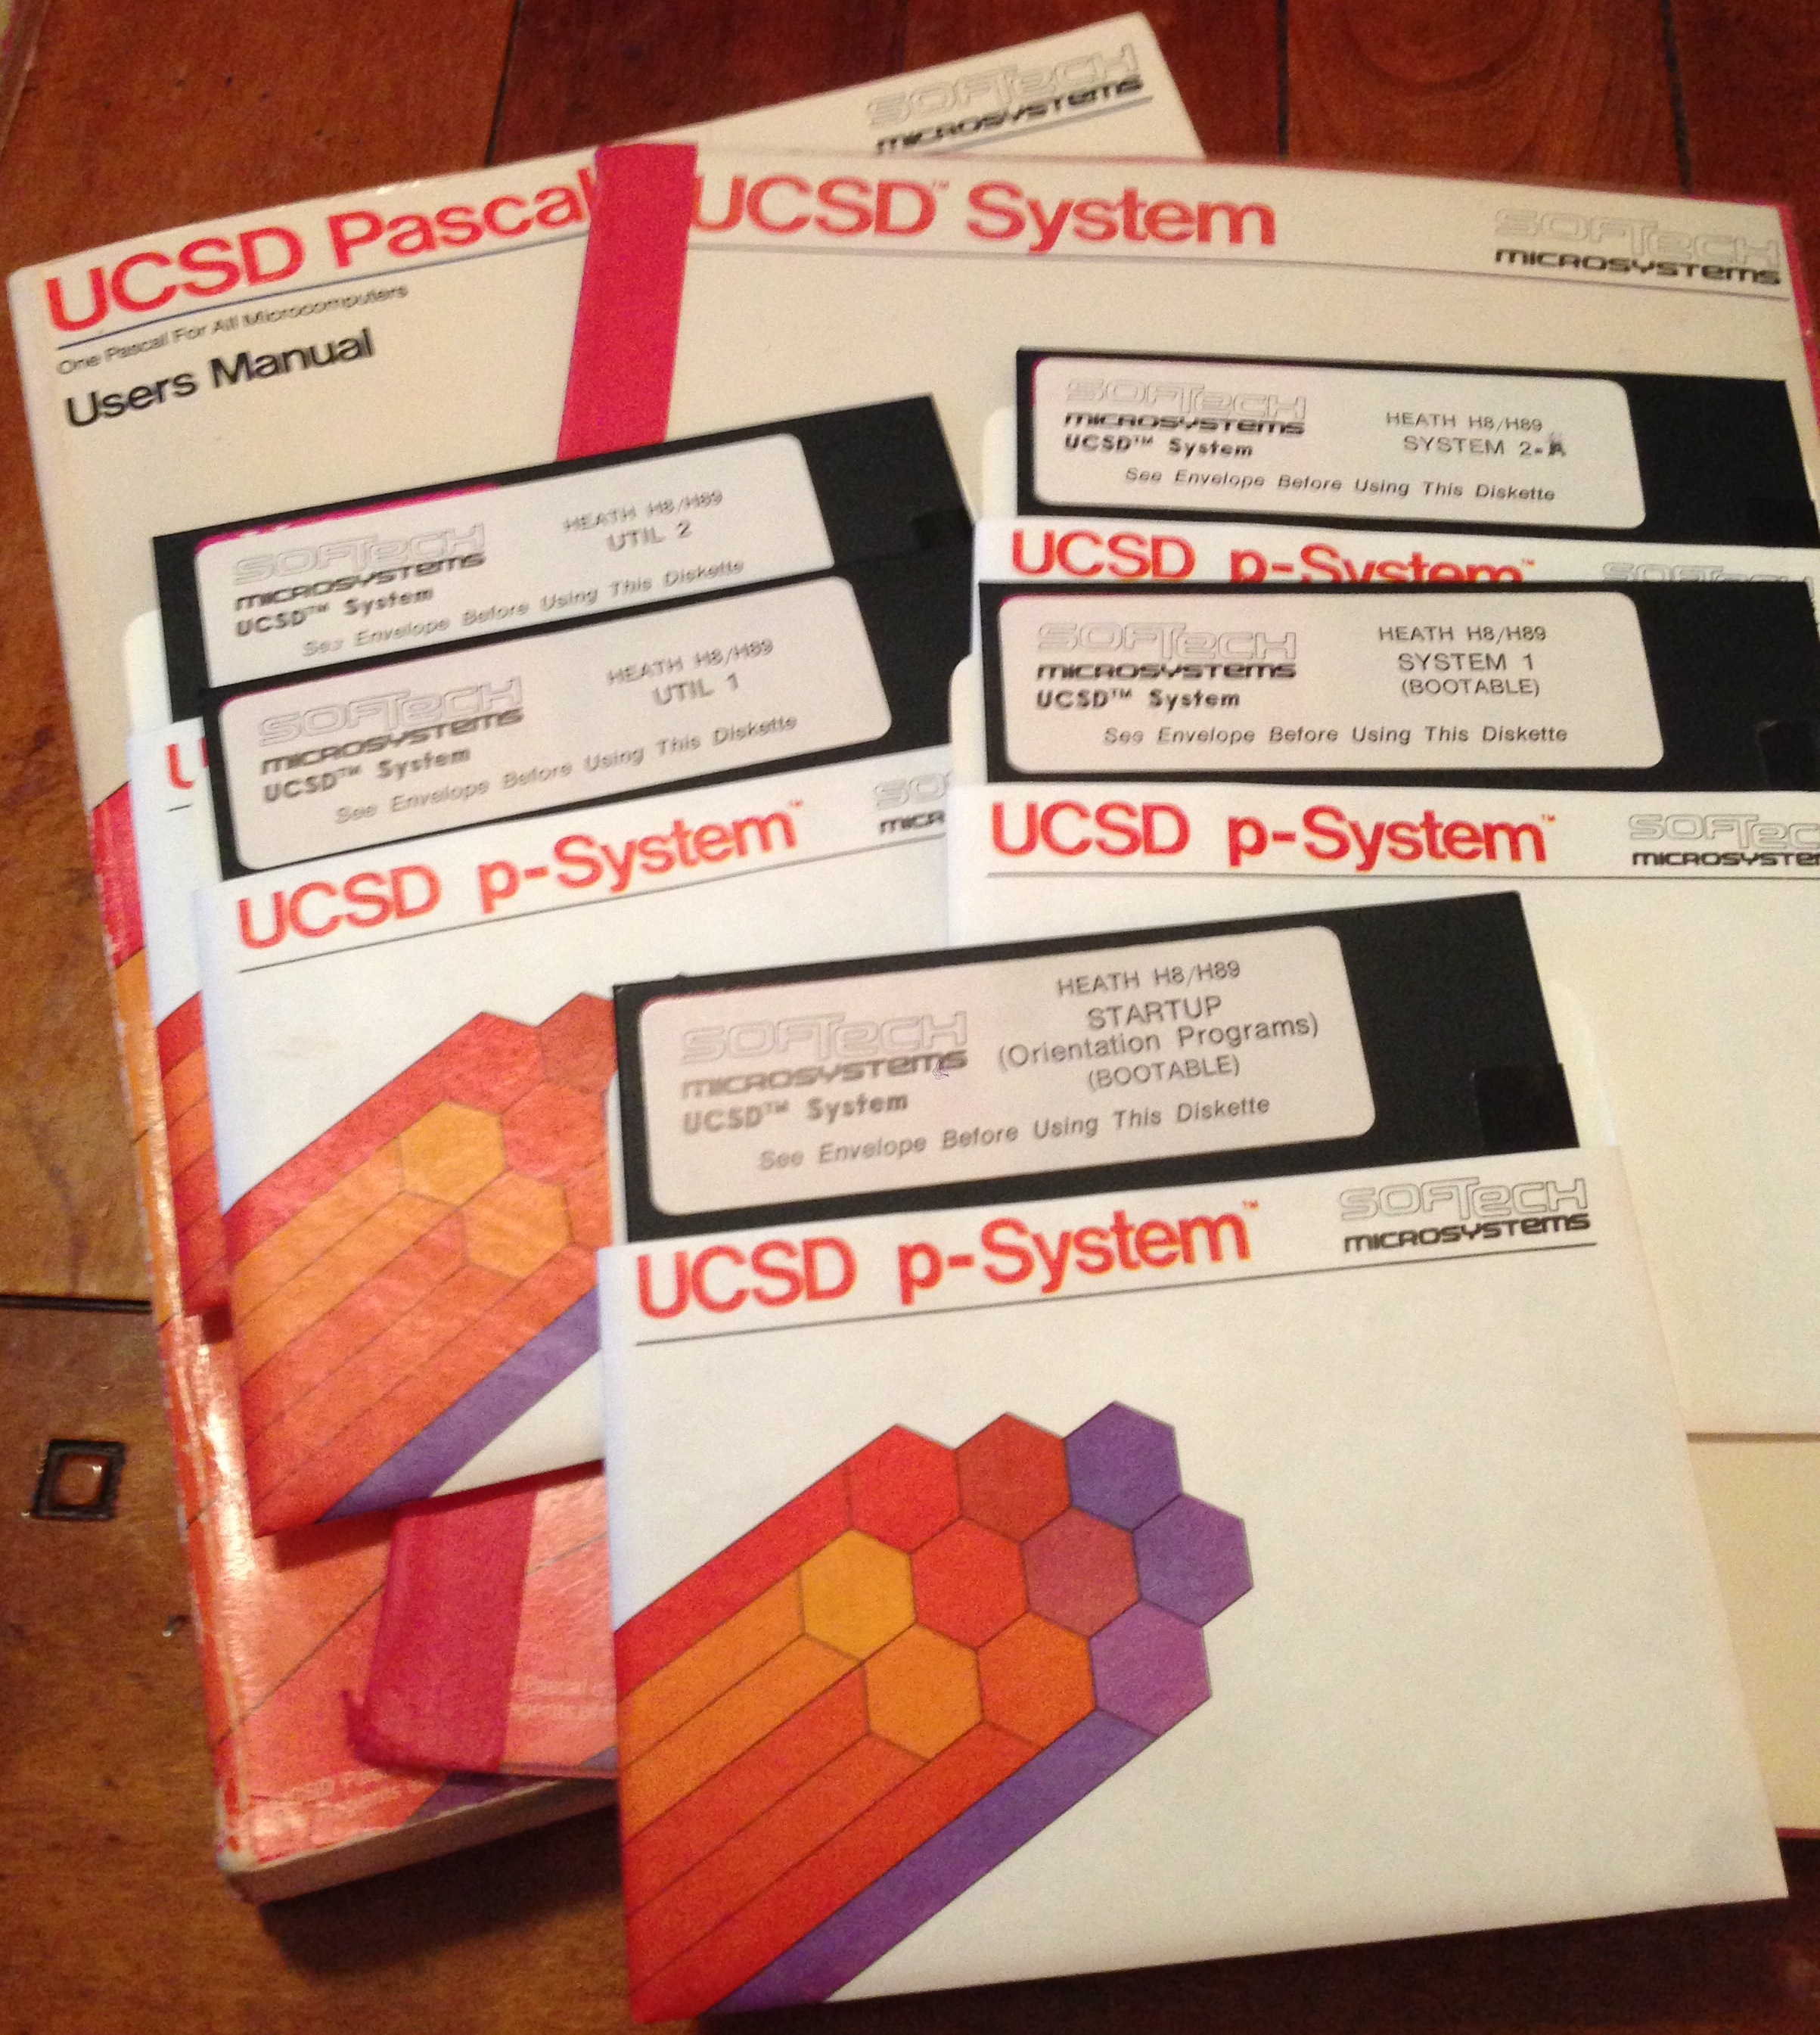 UCSD P-System With Pascal, Version II